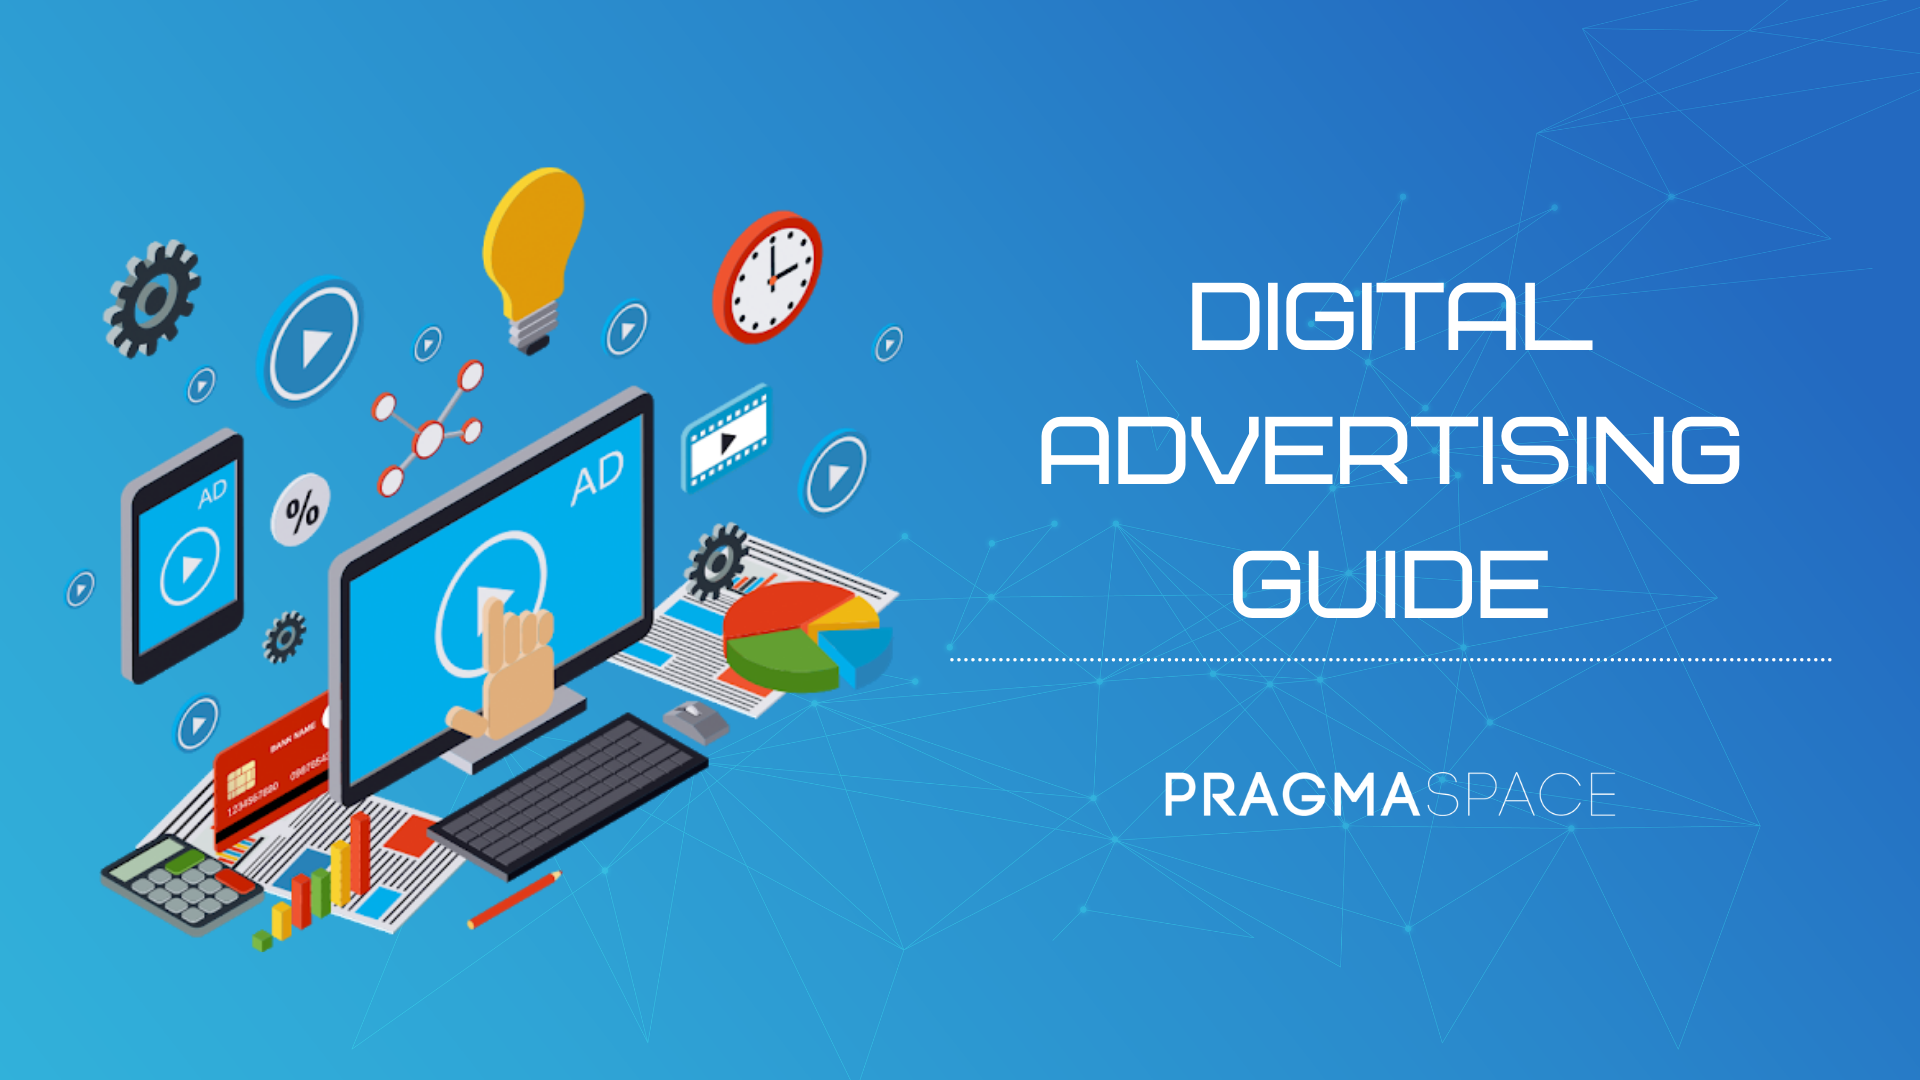 Digital Advertising: Definition, Types & Benefits